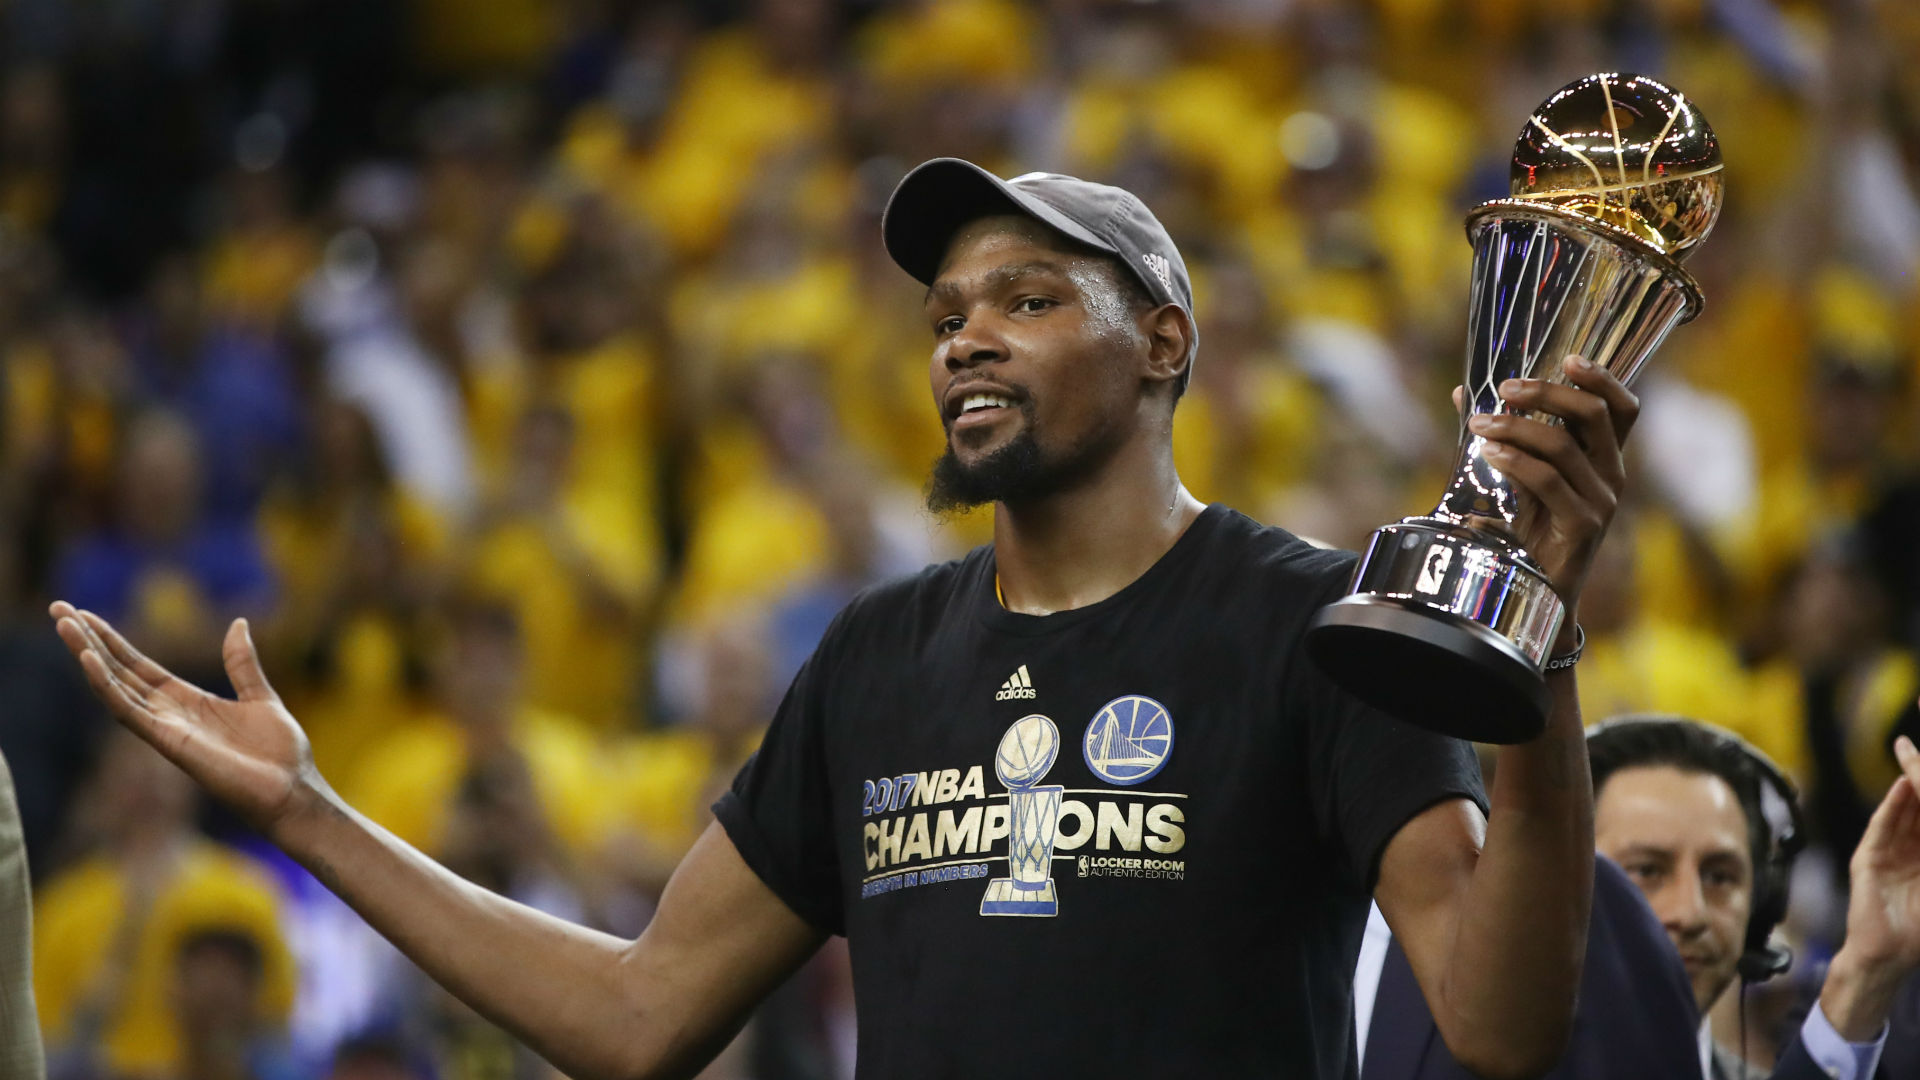 Warriors-Cavaliers generate highest ratings for NBA Finals series since Jordan era